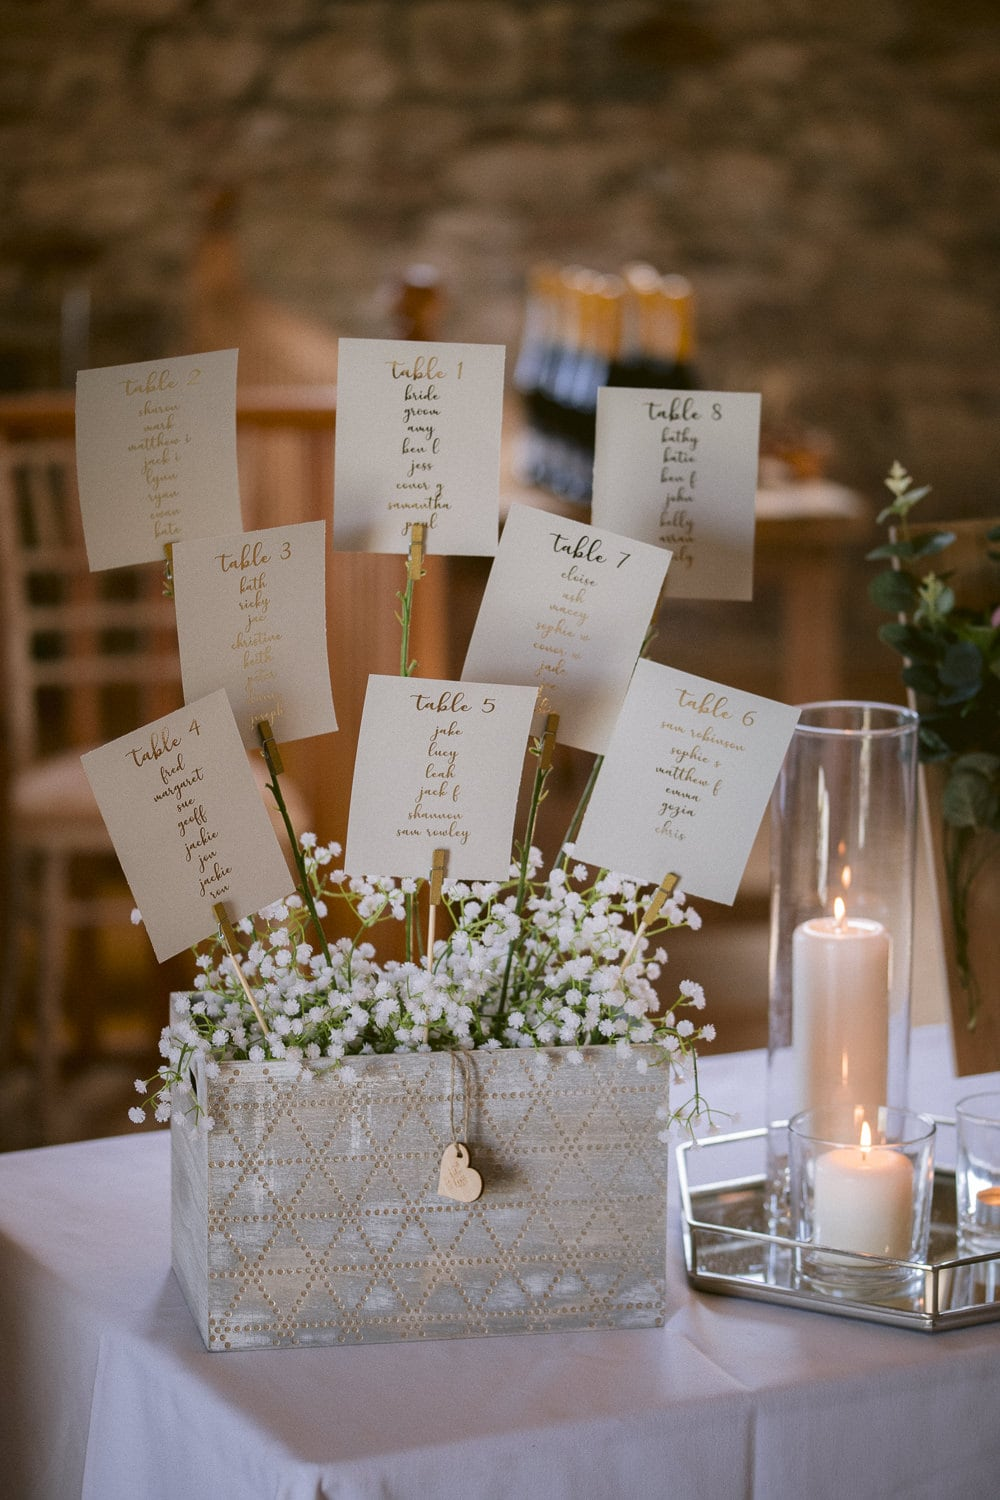 Candle and Guest Cards Pinned in Flower Pot